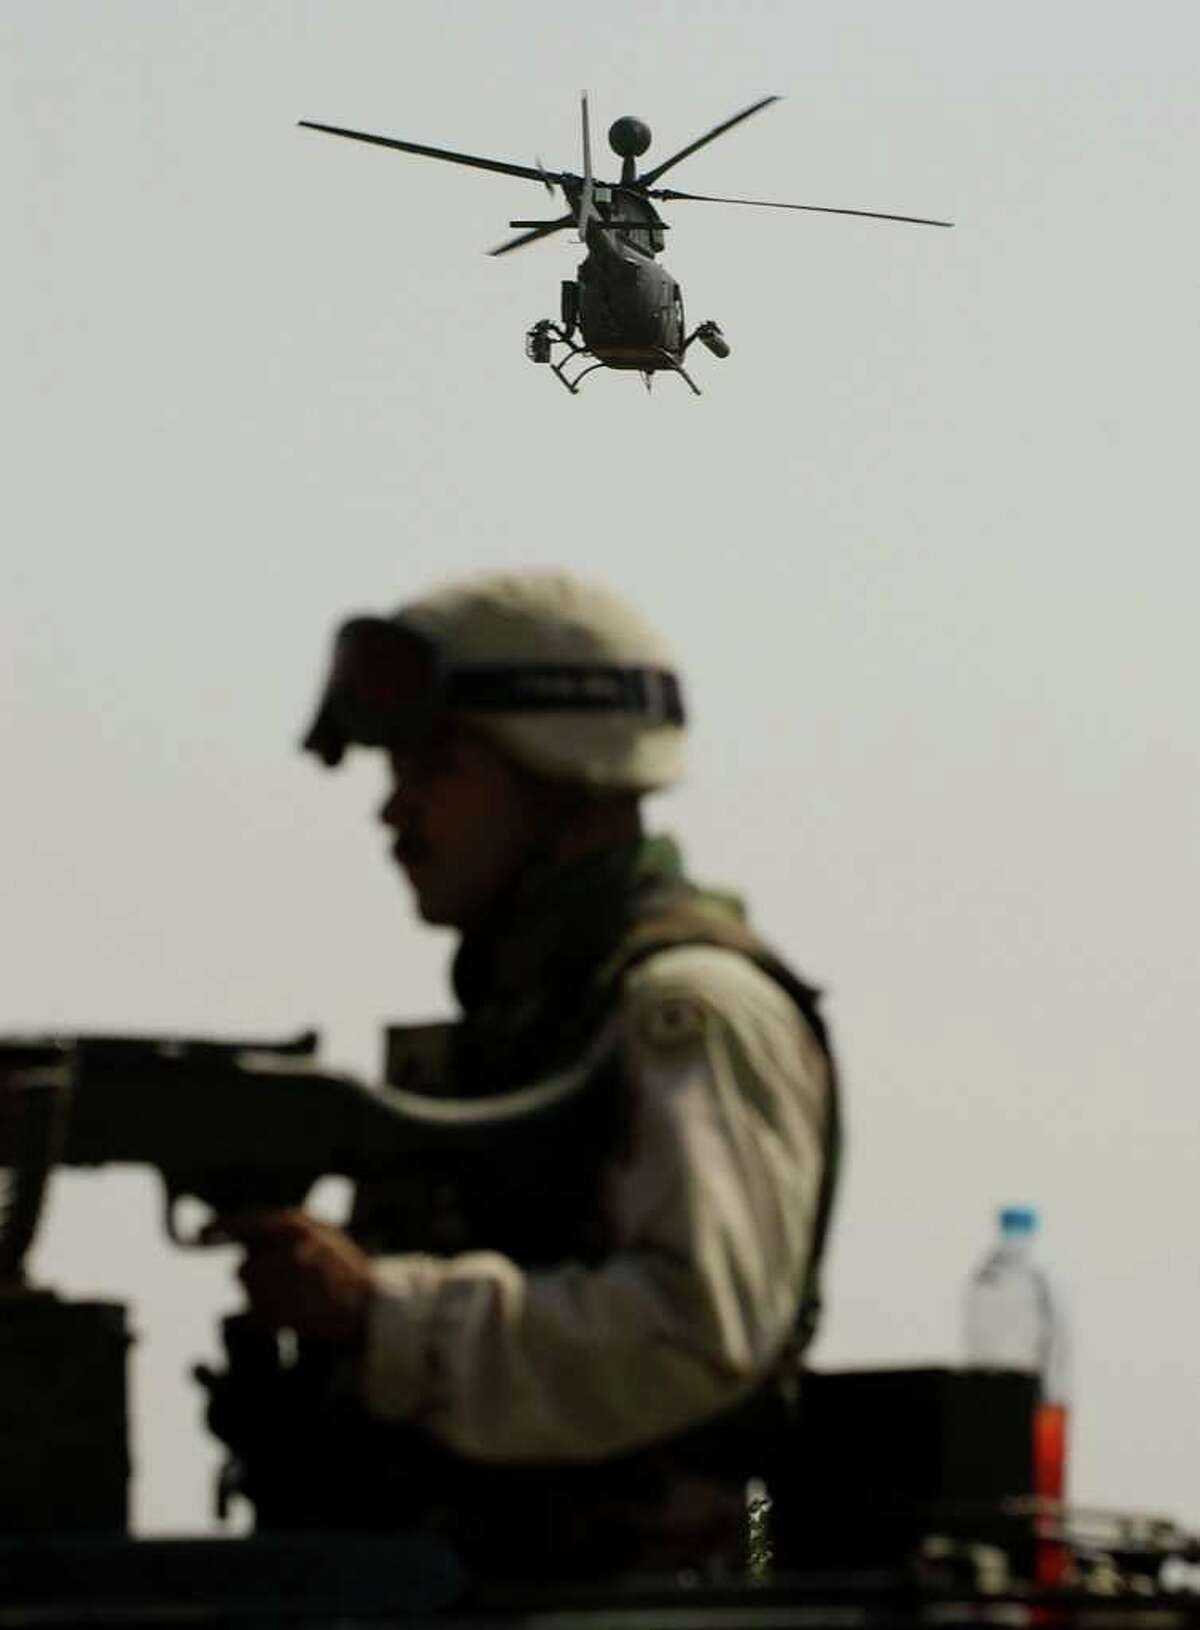 STAN HONDA : AFP/GETTY IMAGES AT WAR: A U.S. Army Kiowa reconnaissance helicopter flies over a soldier on a highway just west of Baghdad in Iraq. The invasion toppled the Iraqi president, Saddam Hussein.